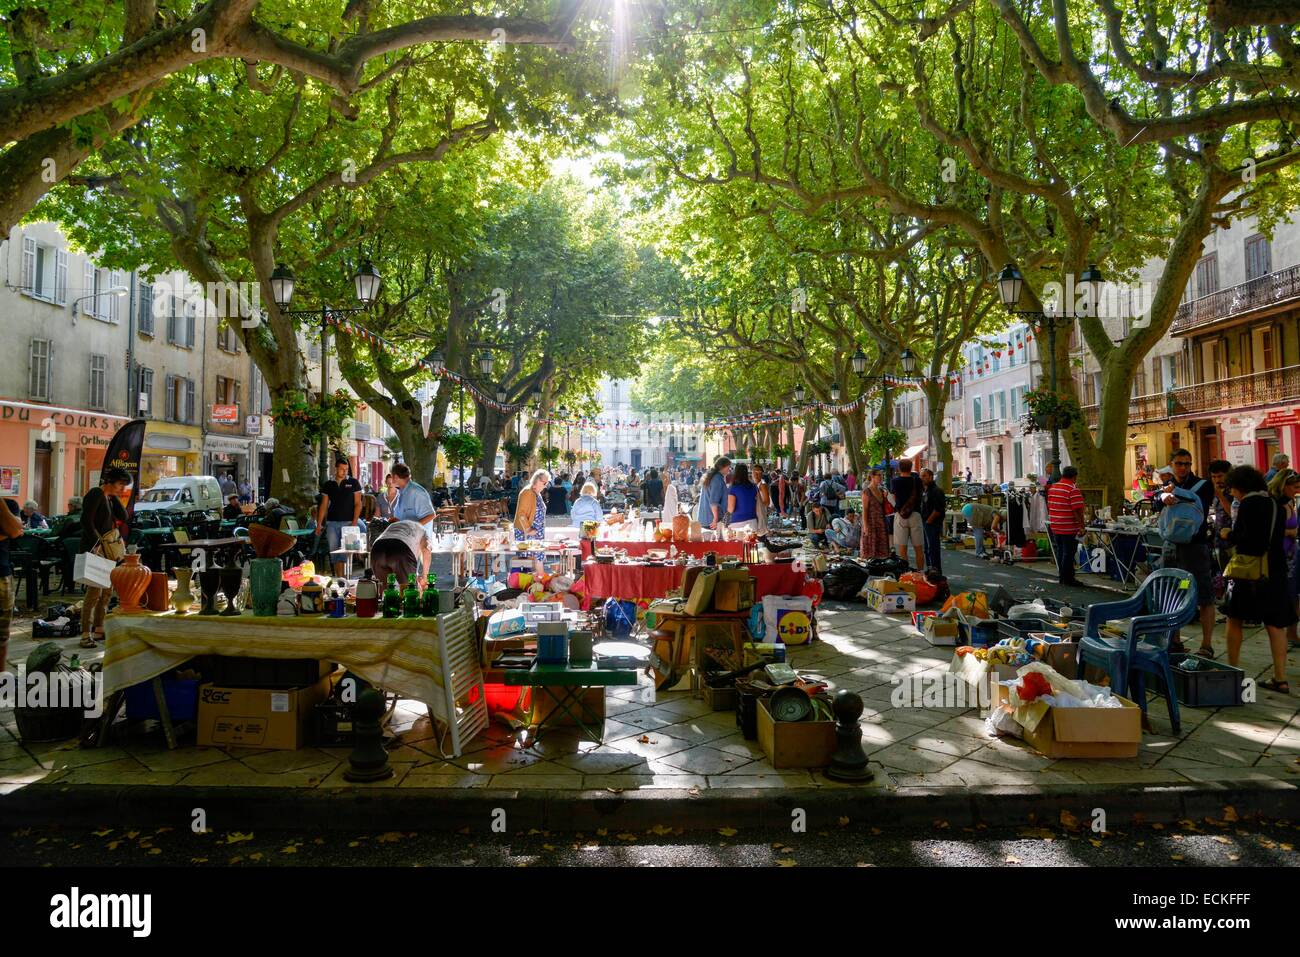 France, Var, Salernes, Theodore Bouge Courts, secondhand trade under plane trees - Stock Image